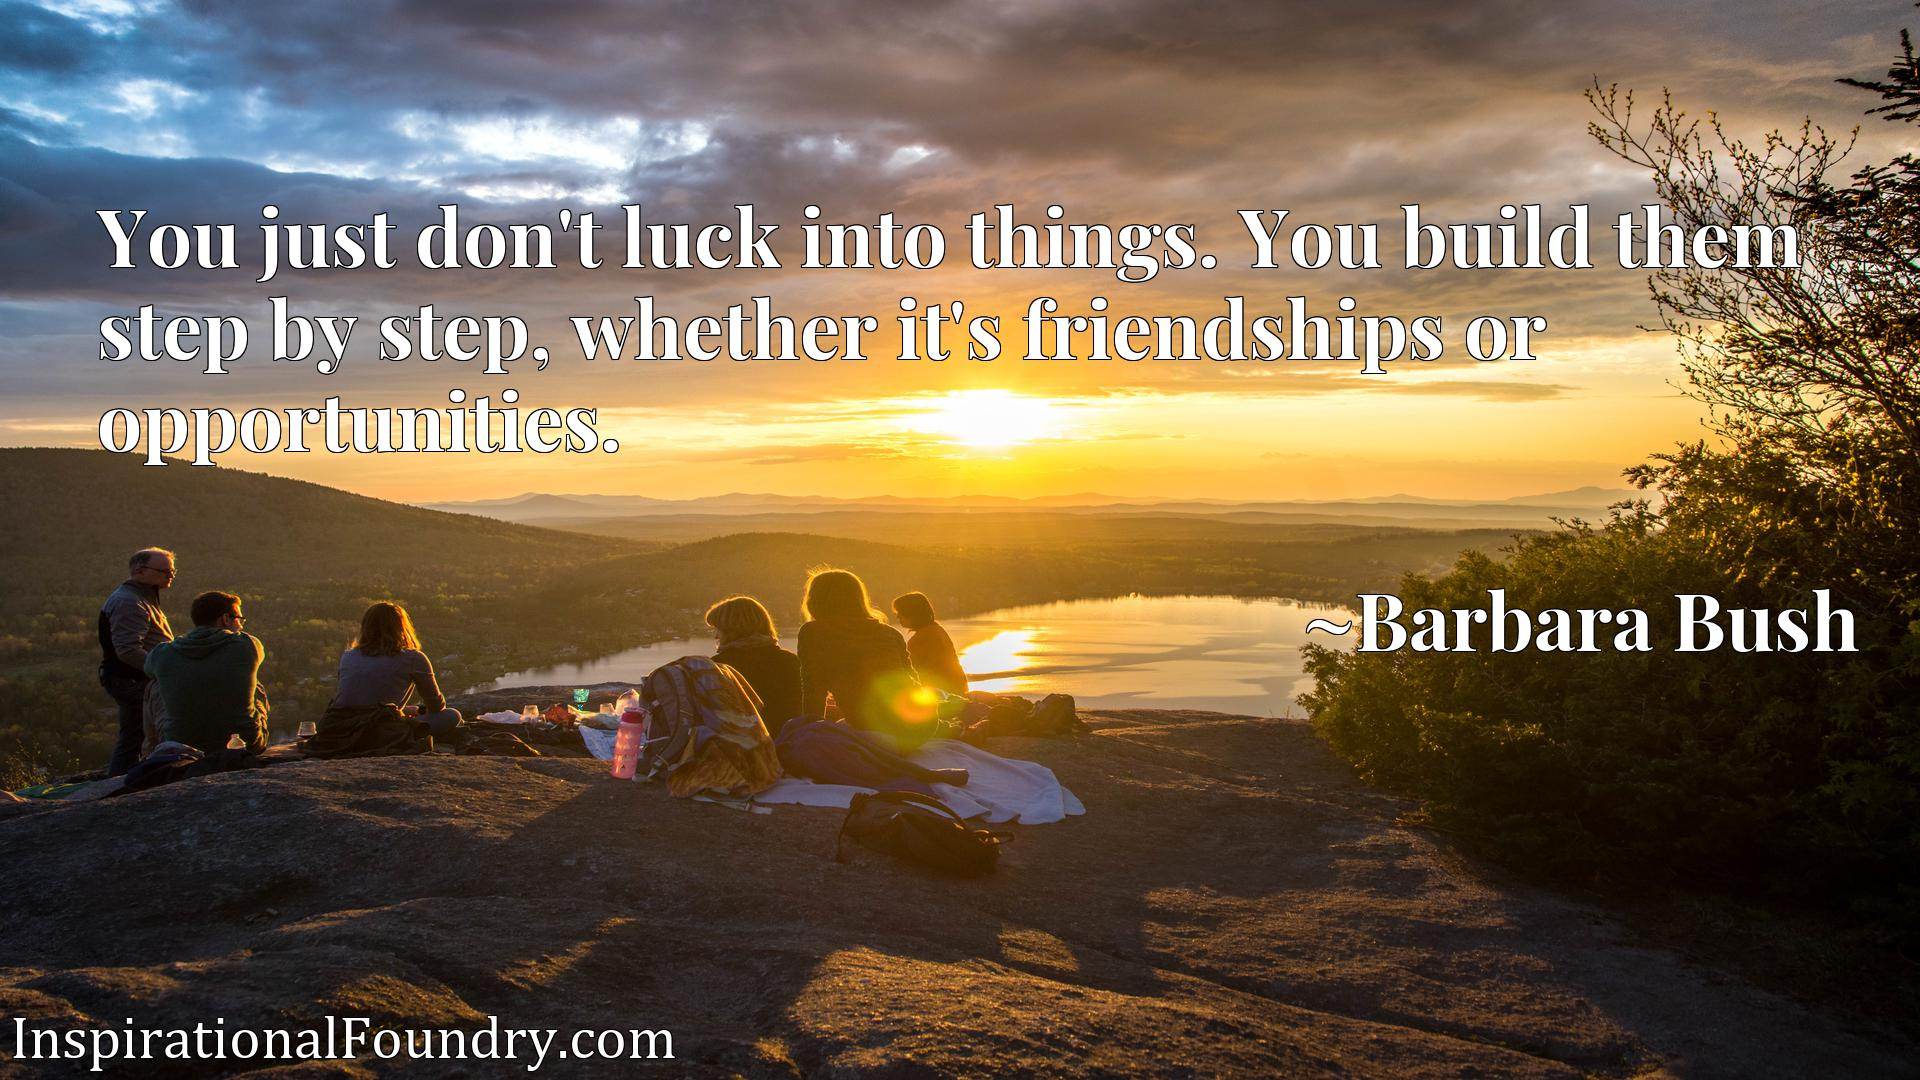 Quote Picture :You just don't luck into things. You build them step by step, whether it's friendships or opportunities.